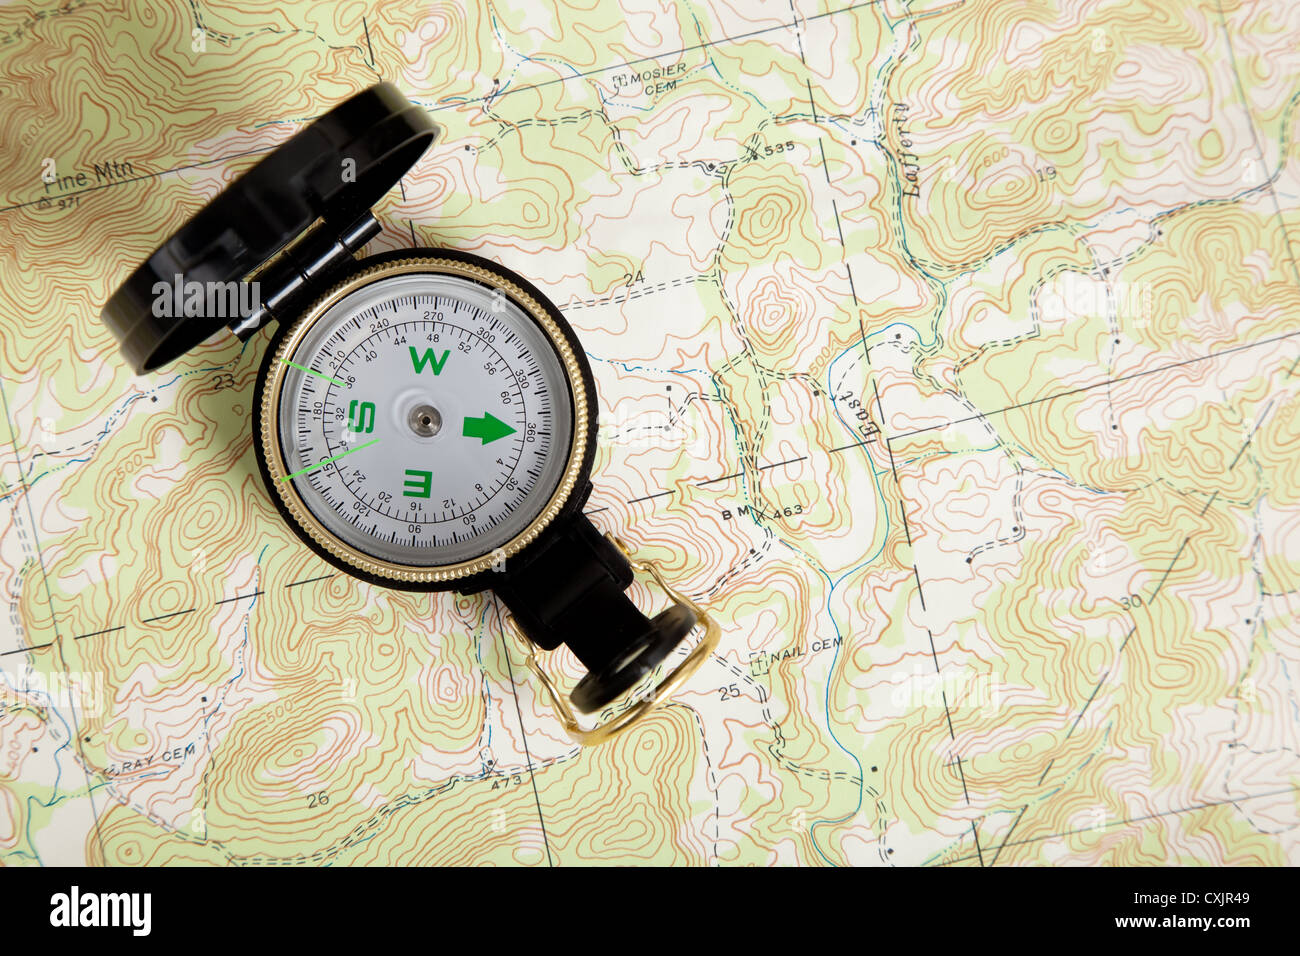 Topographical map and compass - Stock Image